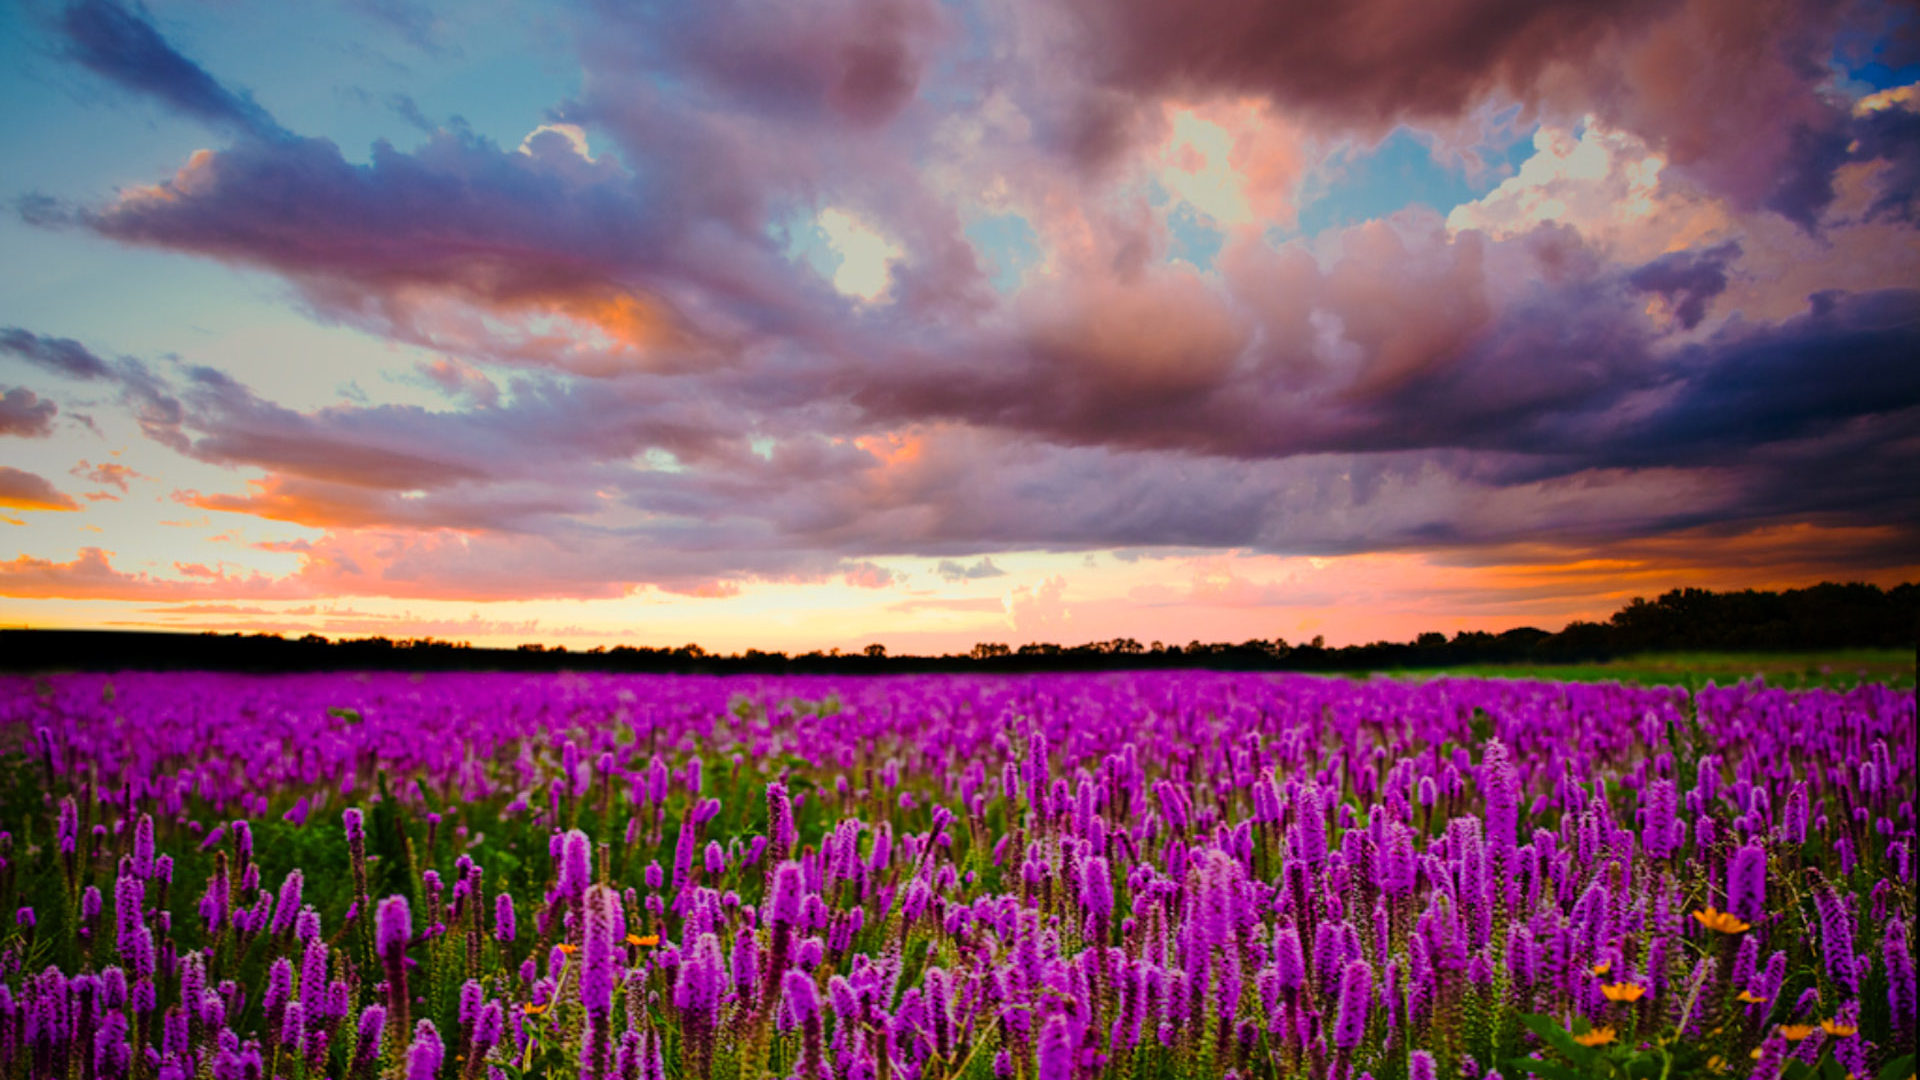 Sunset Field With Purple Flowers Of Lavender Sky With Dark